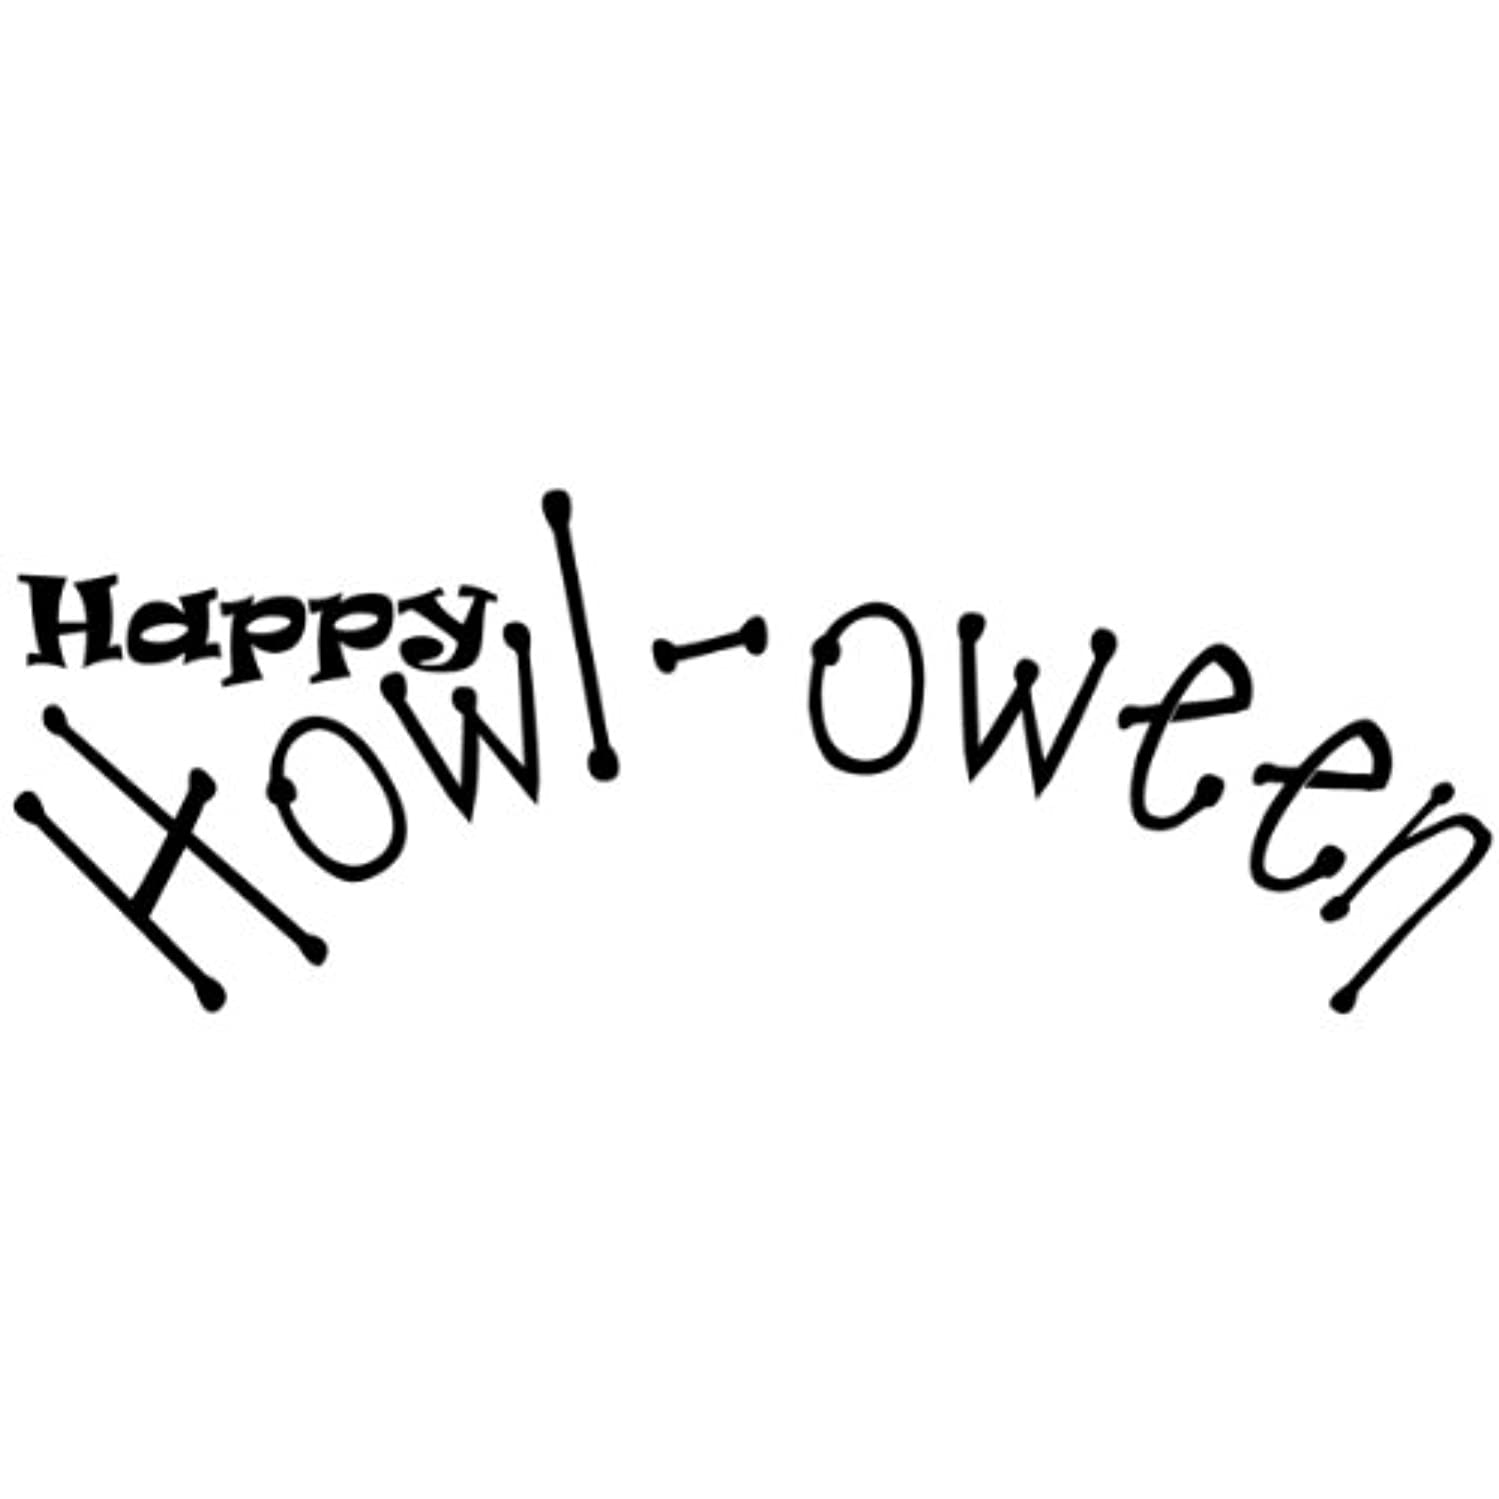 C.C. Designs Logo Sentiments Cling Stamp, 1 by 2-Inch, Happy Howl-Oween